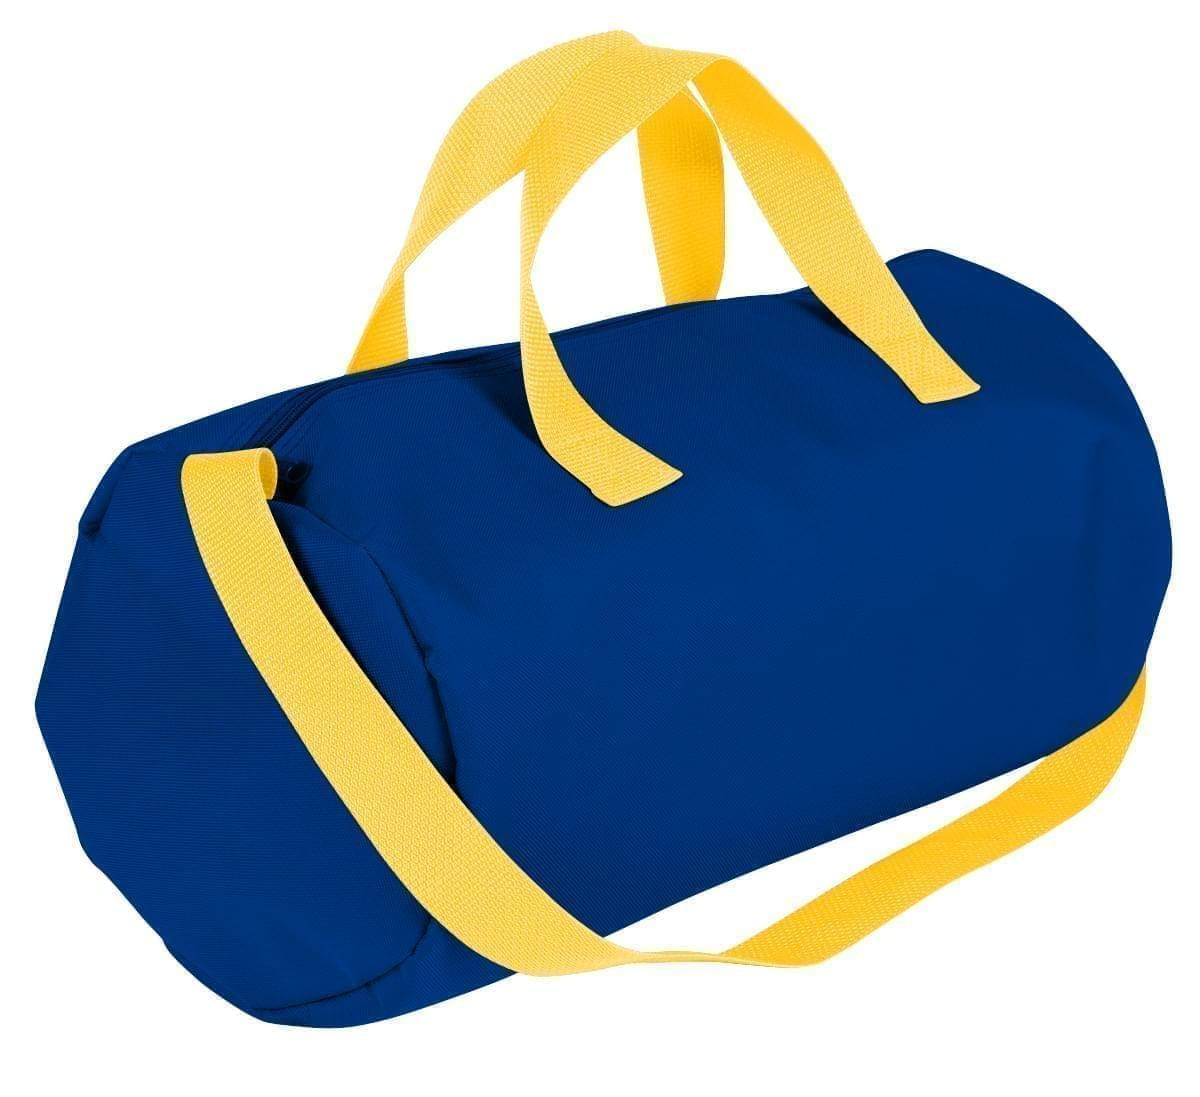 USA Made Nylon Poly Gym Roll Bags, Royal Blue-Gold, ROCX31AA05